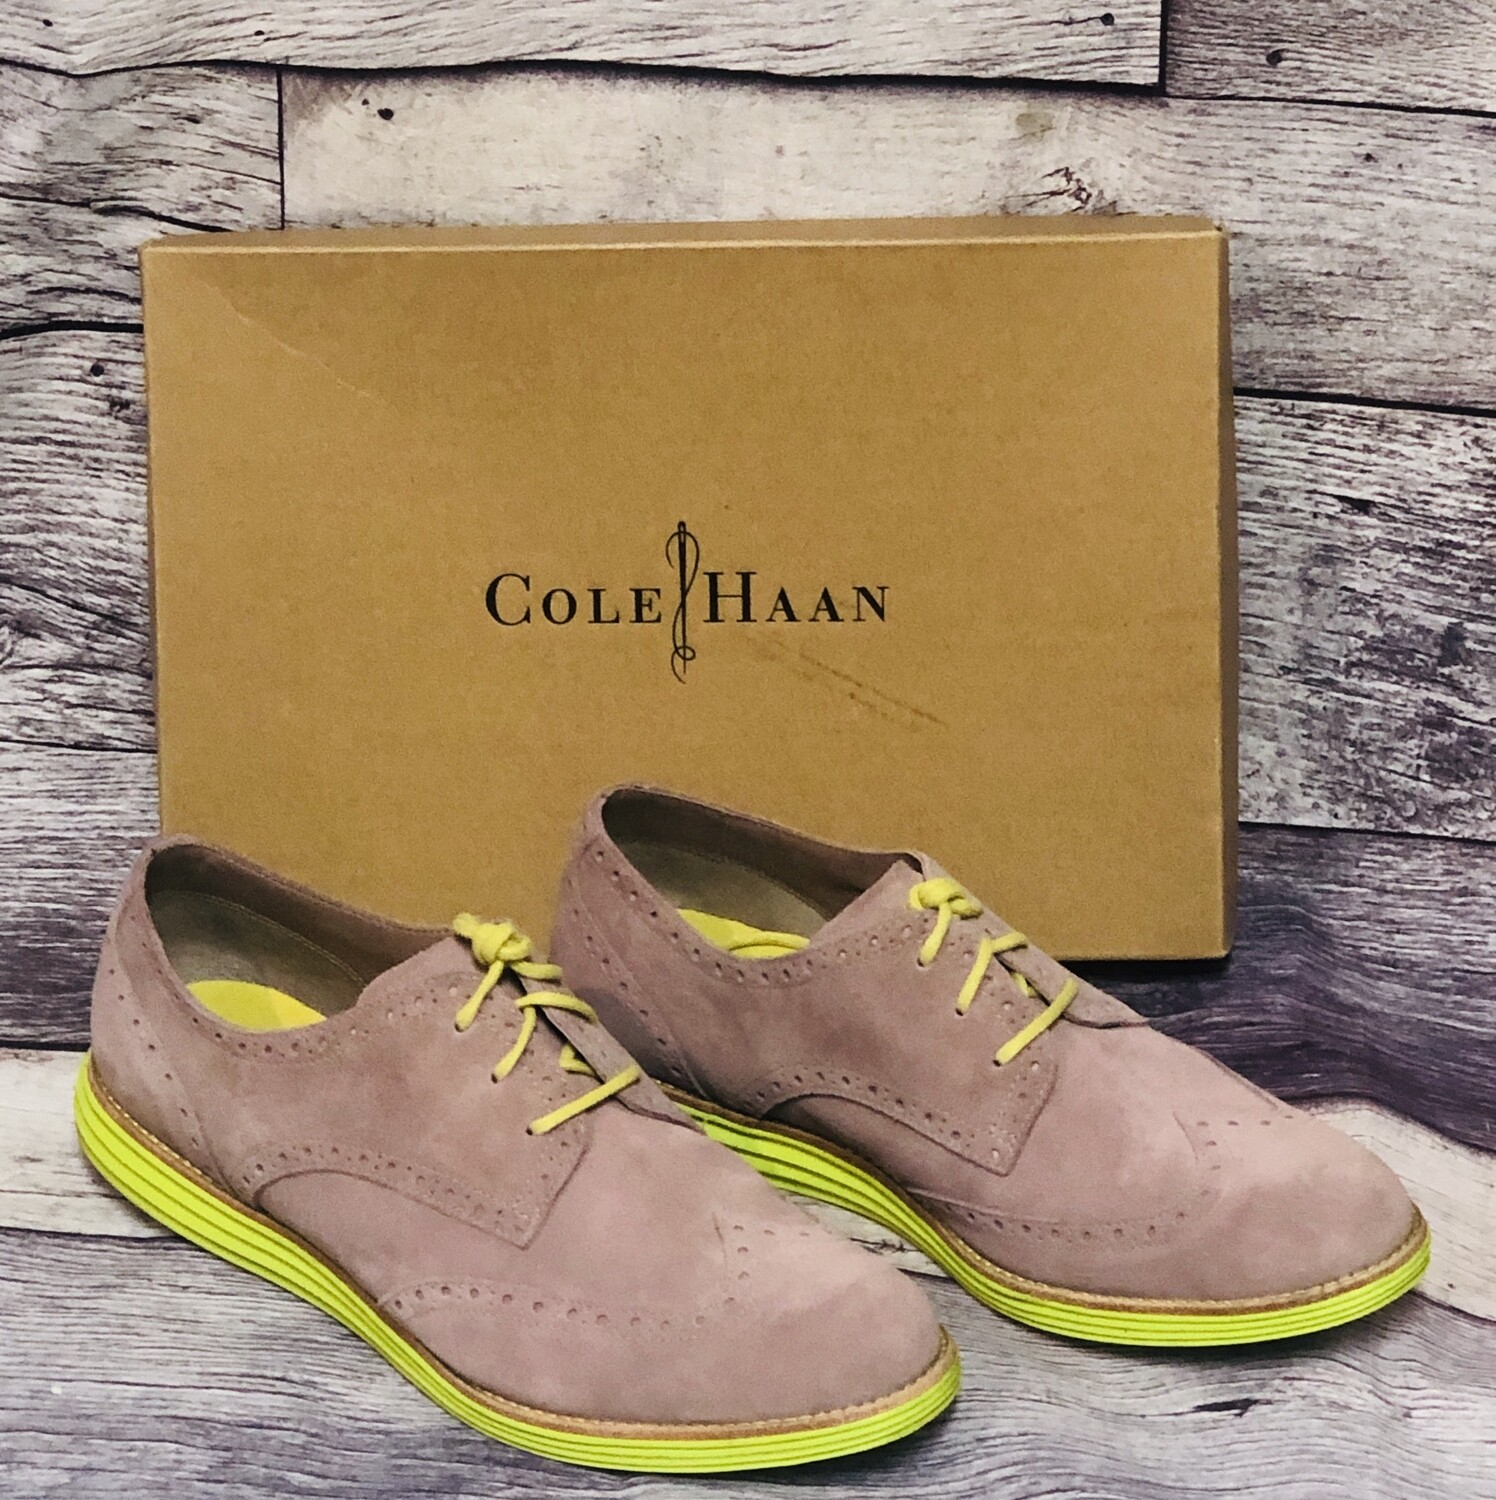 Ladies Cole Haan Lunagrand Lilac & Neon Suede Wing Tips size 10